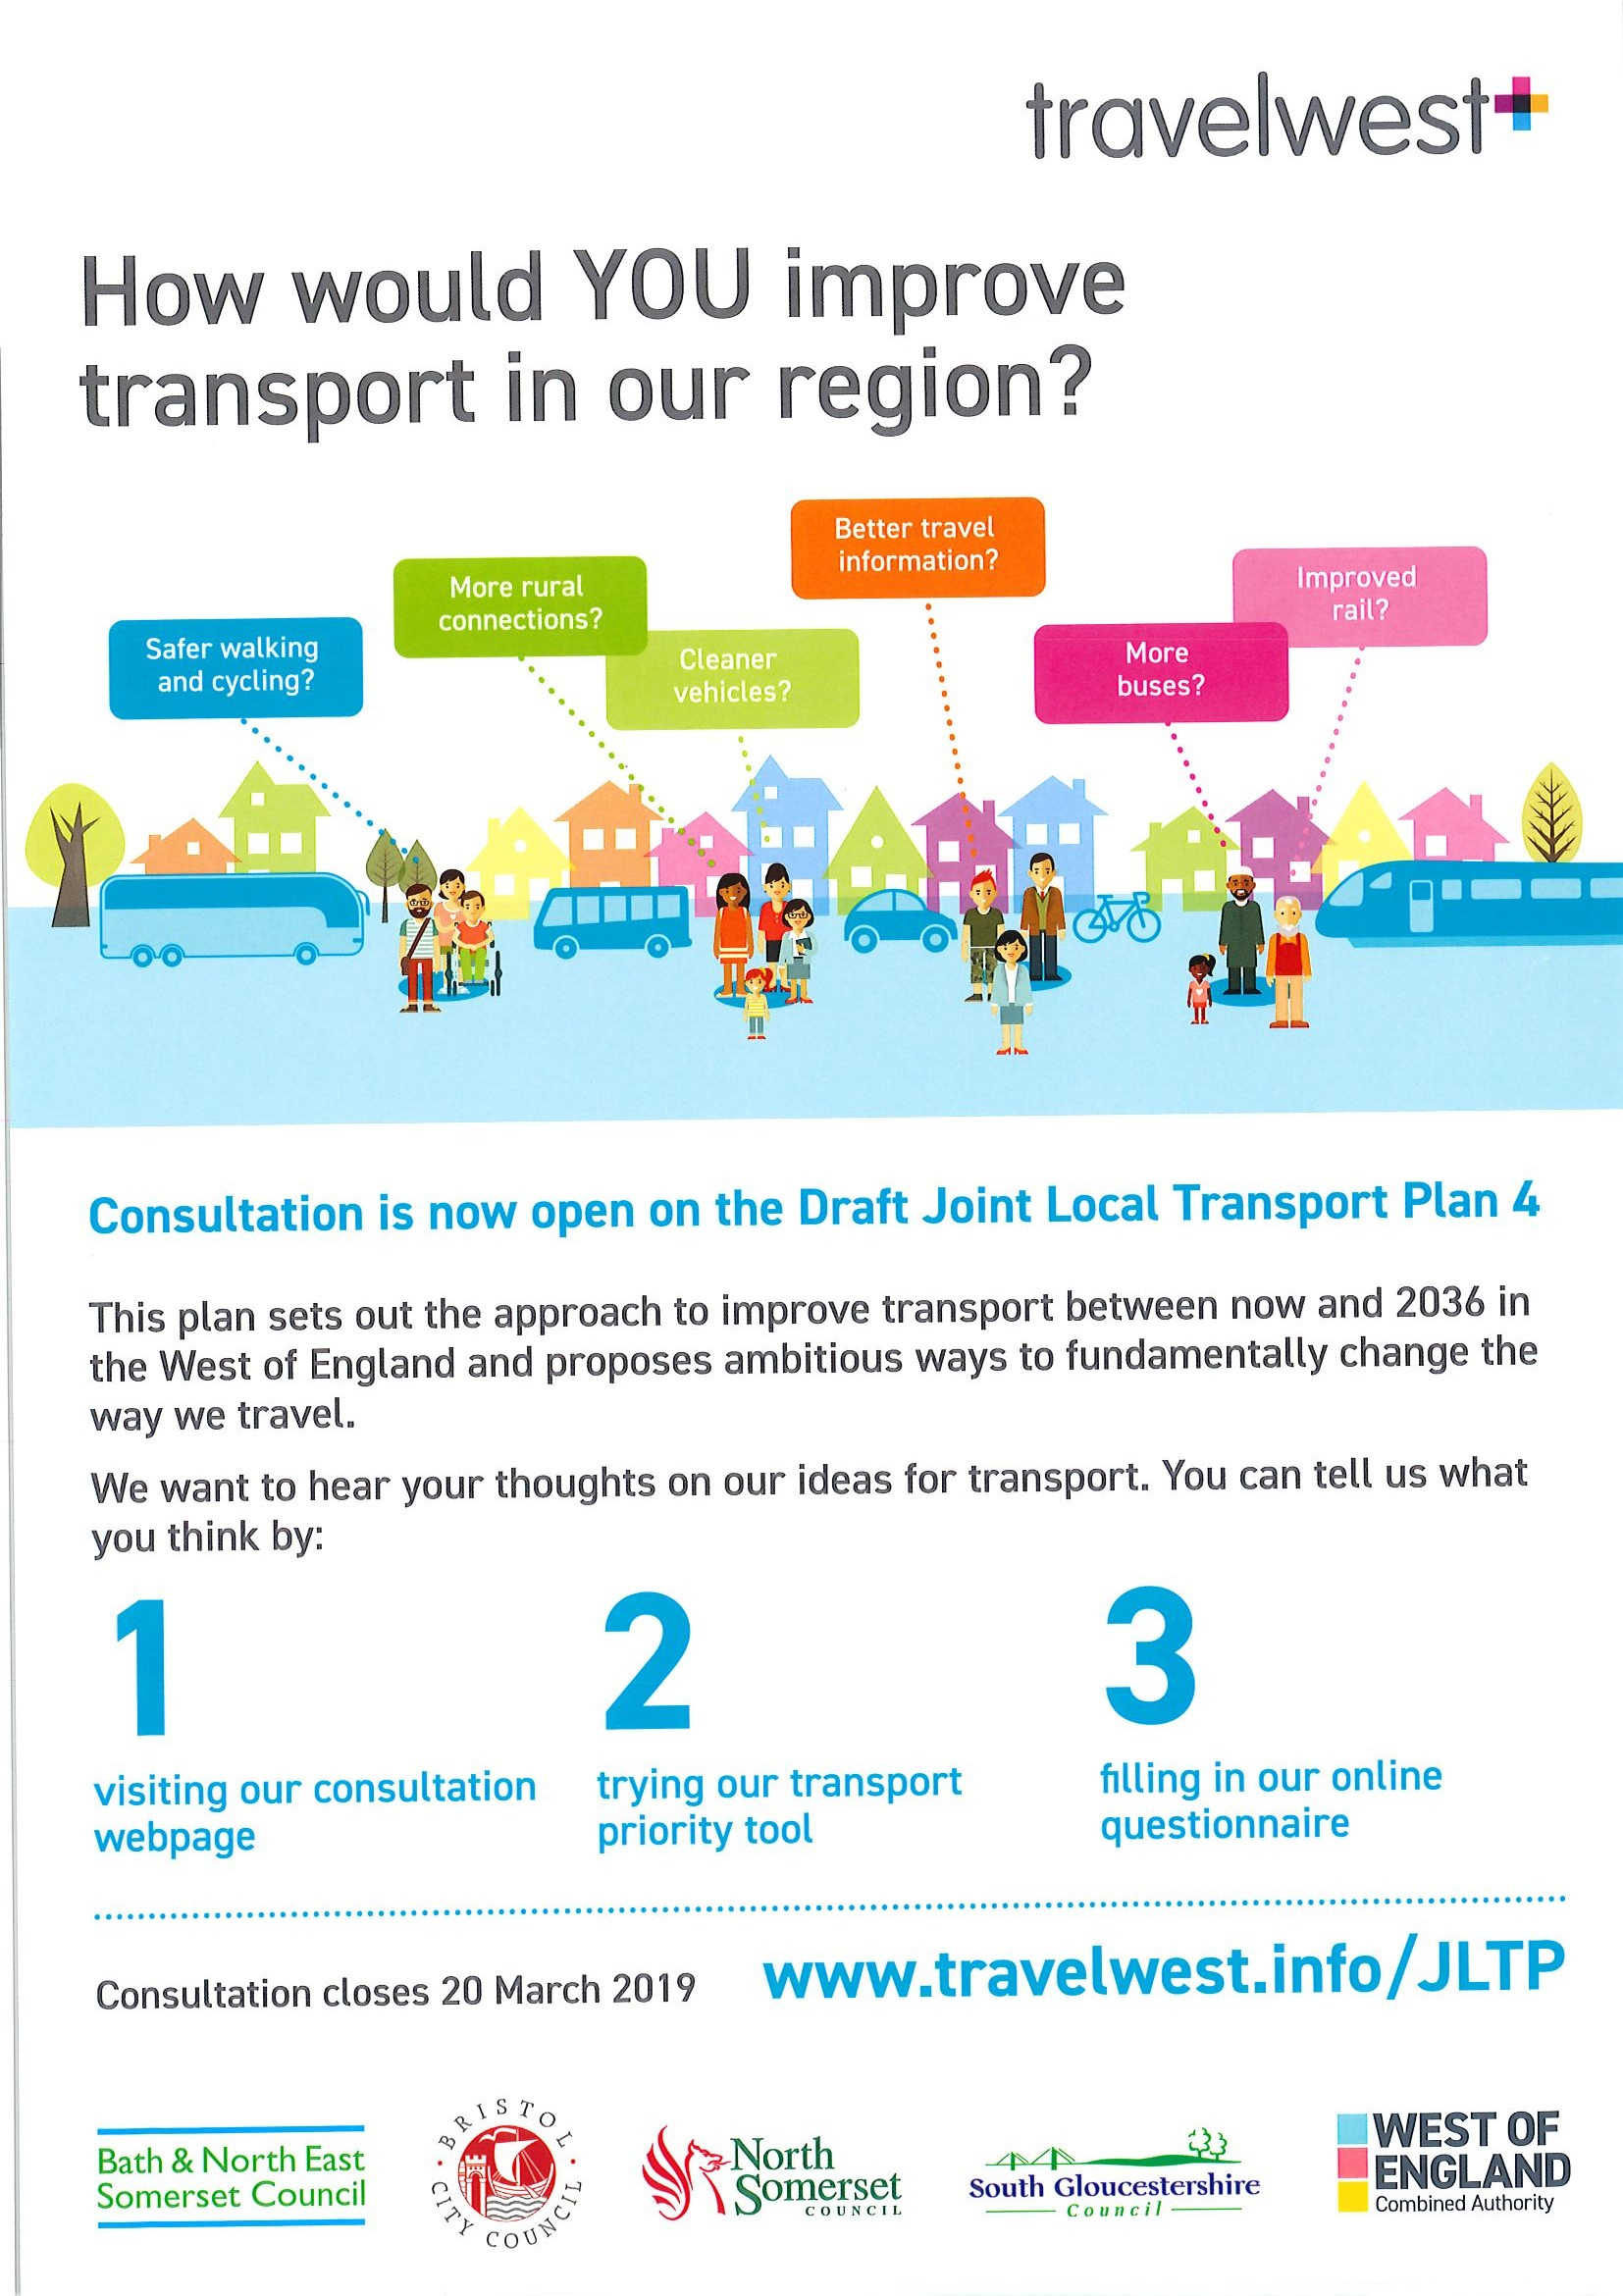 Draft Joint Local Transport Plan 4 consultation